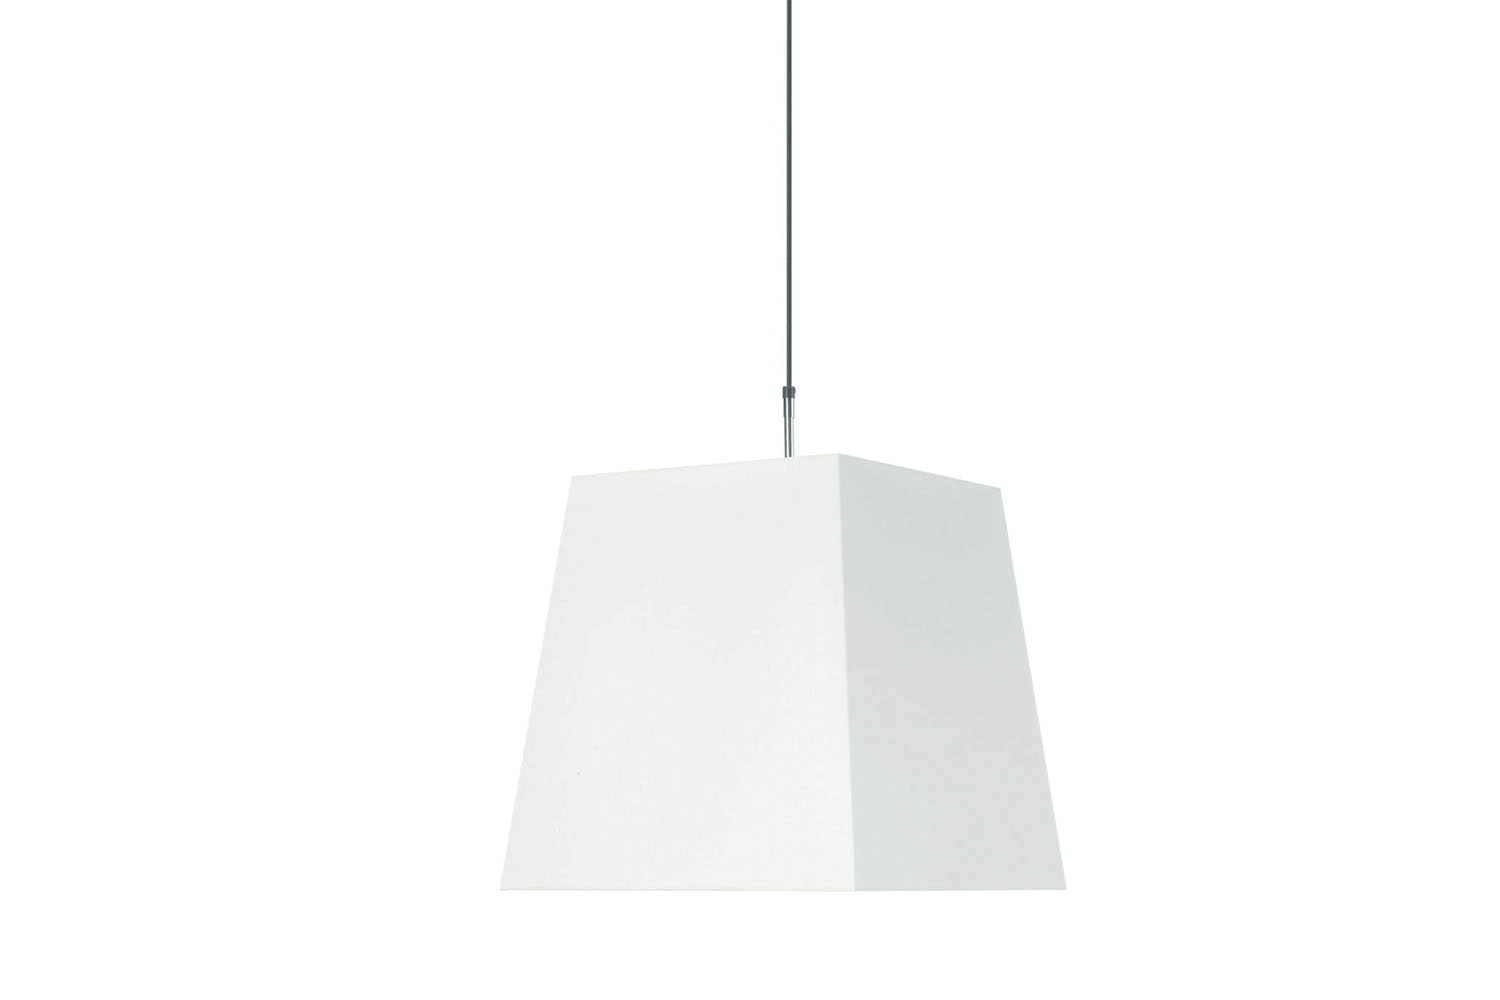 Square Light Suspension Lamp by Marcel Wanders for Moooi